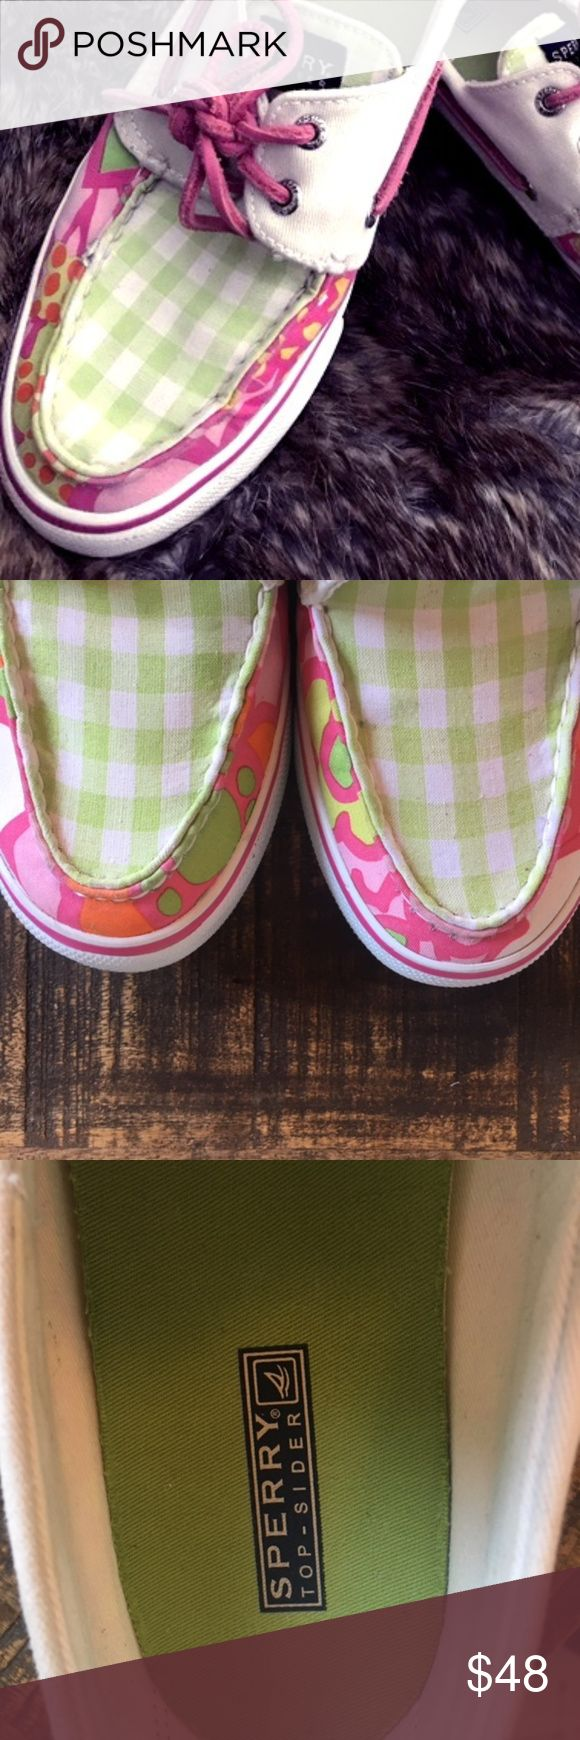 Lilly Pulitzer Inspired Sperry Topsiders Shoes Super cute Lilly-inspired Sperry Topsiders Green gingham outlined by pink, orange and white large floral pattern Pink leather laces and pink line around sole Super padded and comfy. Look great with shorts, pants or a dress Great Used Condition - see pics! :) Barely worn - were just too tight Size 9 (Women's Regular) PERFECT FOR SPRING Or Boat shoes ;-) Sperry Shoes